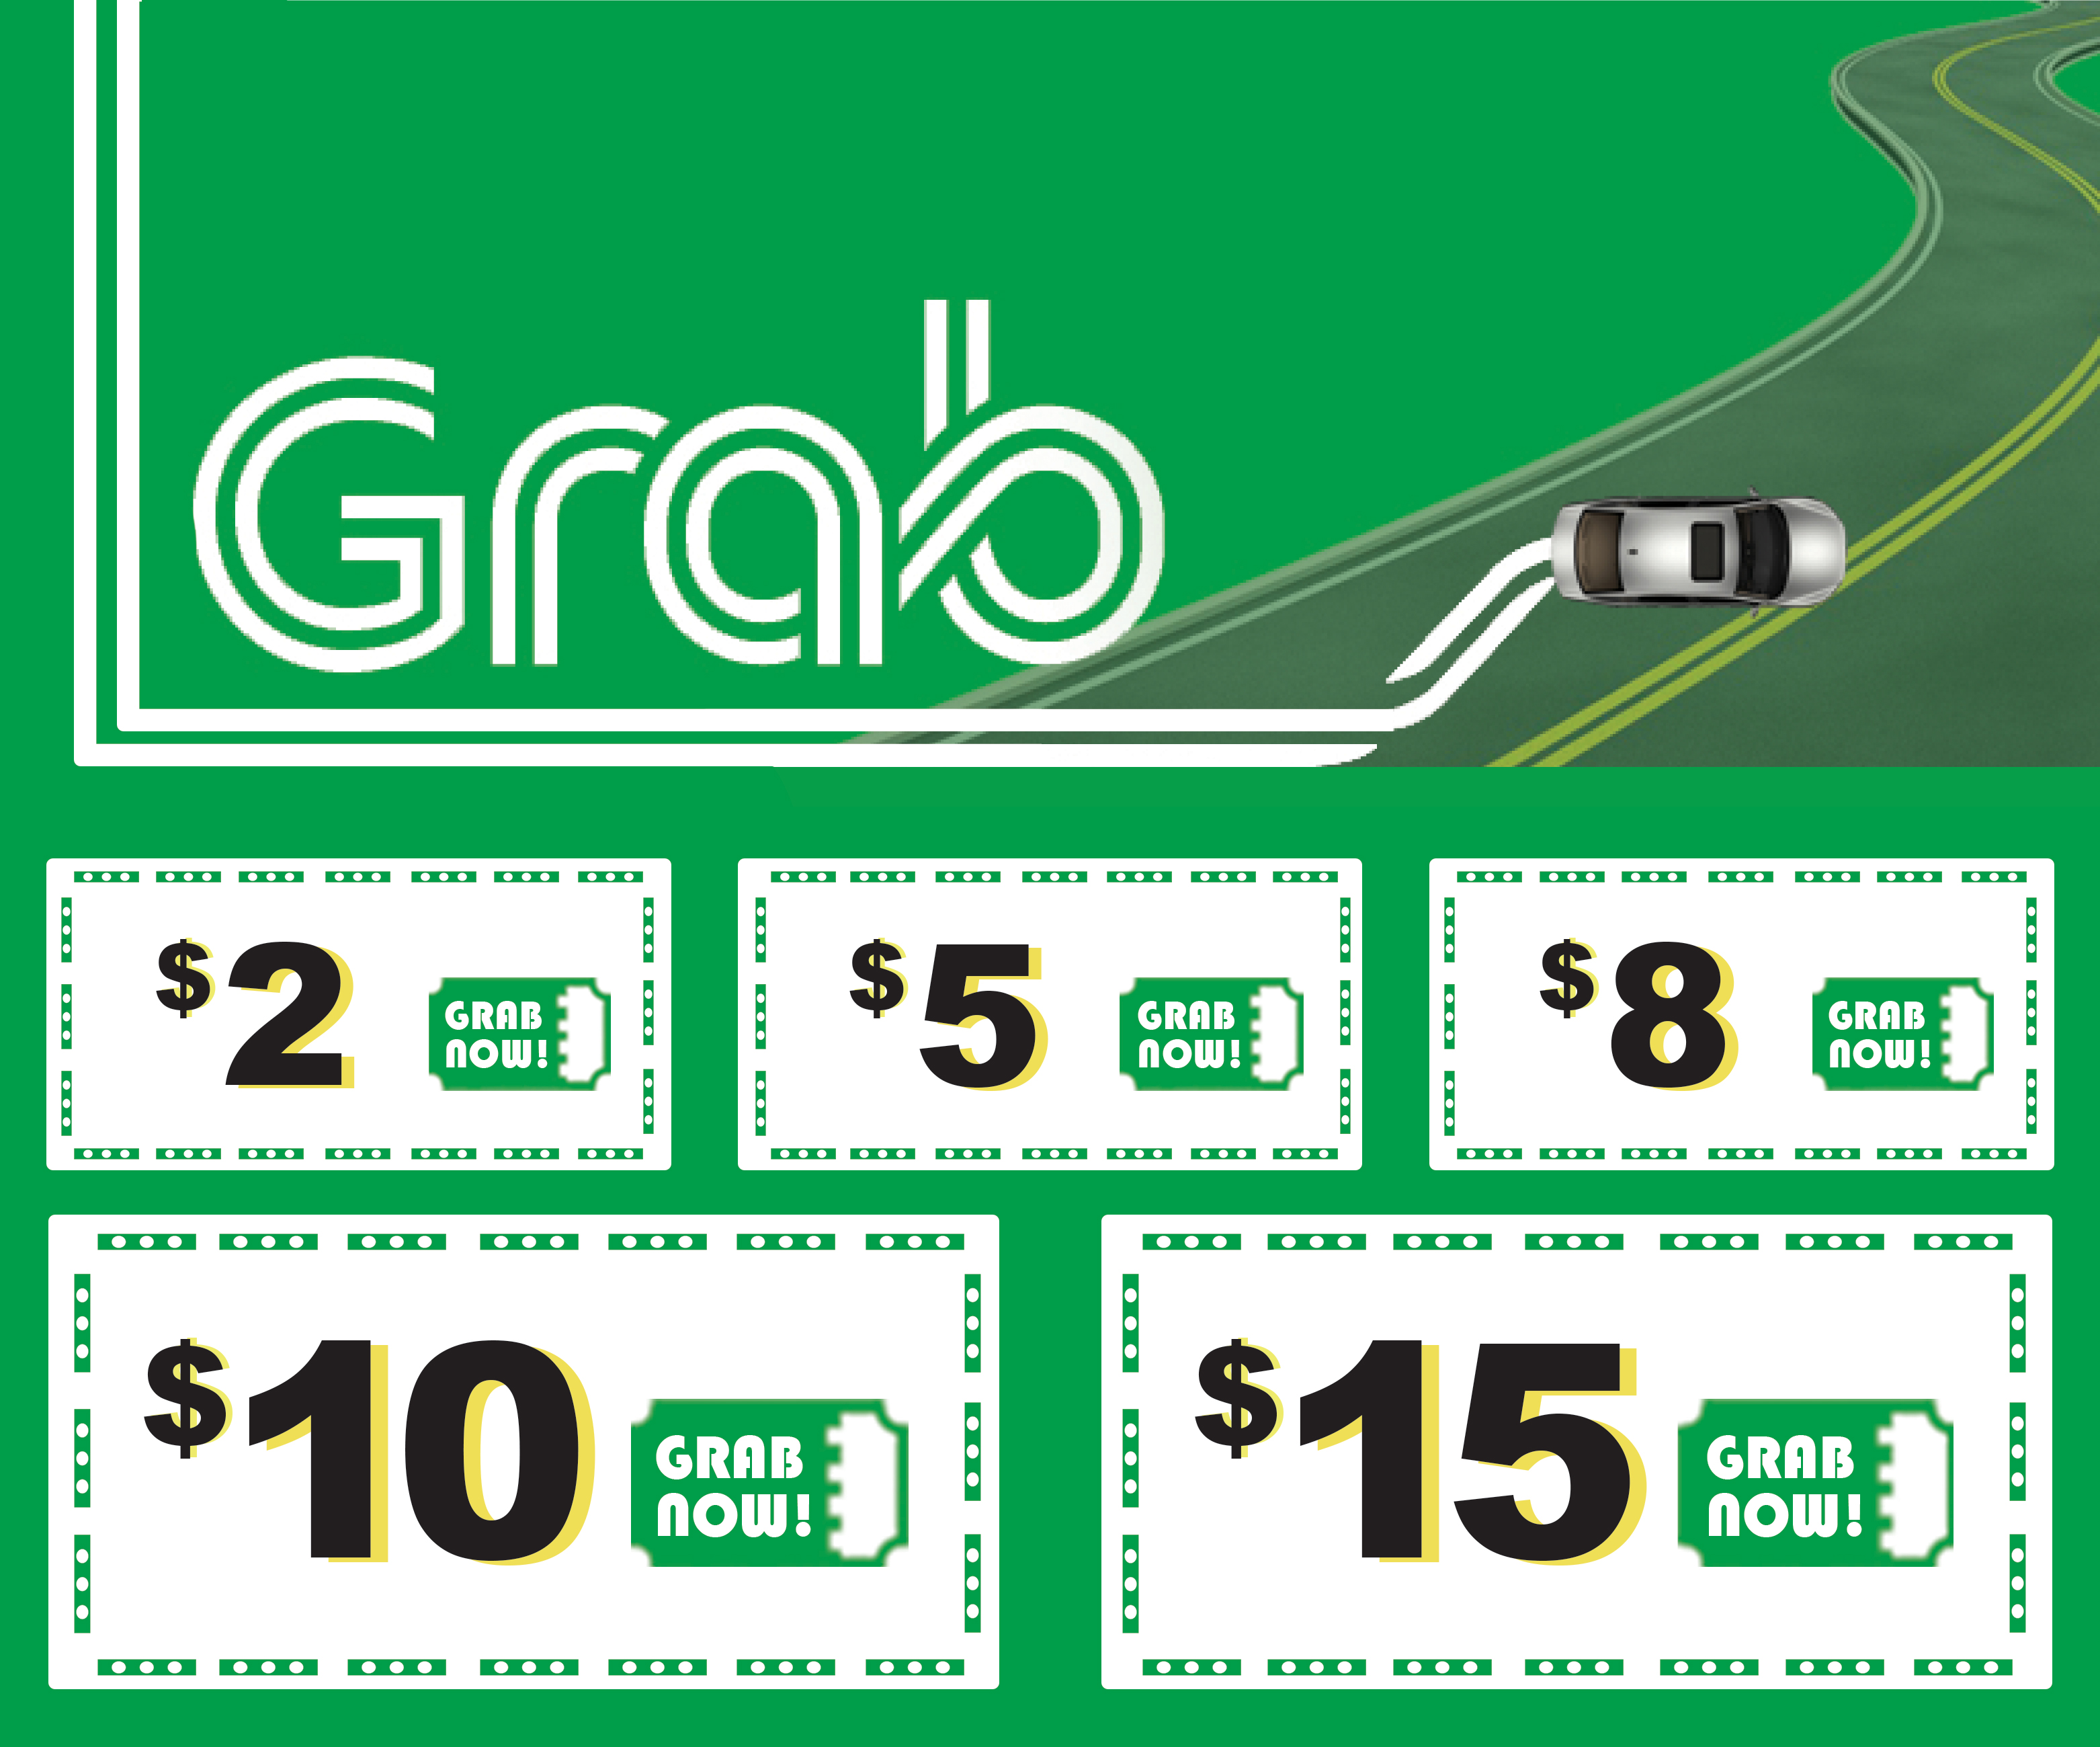 [GRAB] $15 Voucher/SGD15 OFF/Promo Code/Gift Card/GrabGifts/Gift  Code/Voucher Code/Gift Voucher/E-Voucher/Grab Rides/Transport (Email  Delivery)